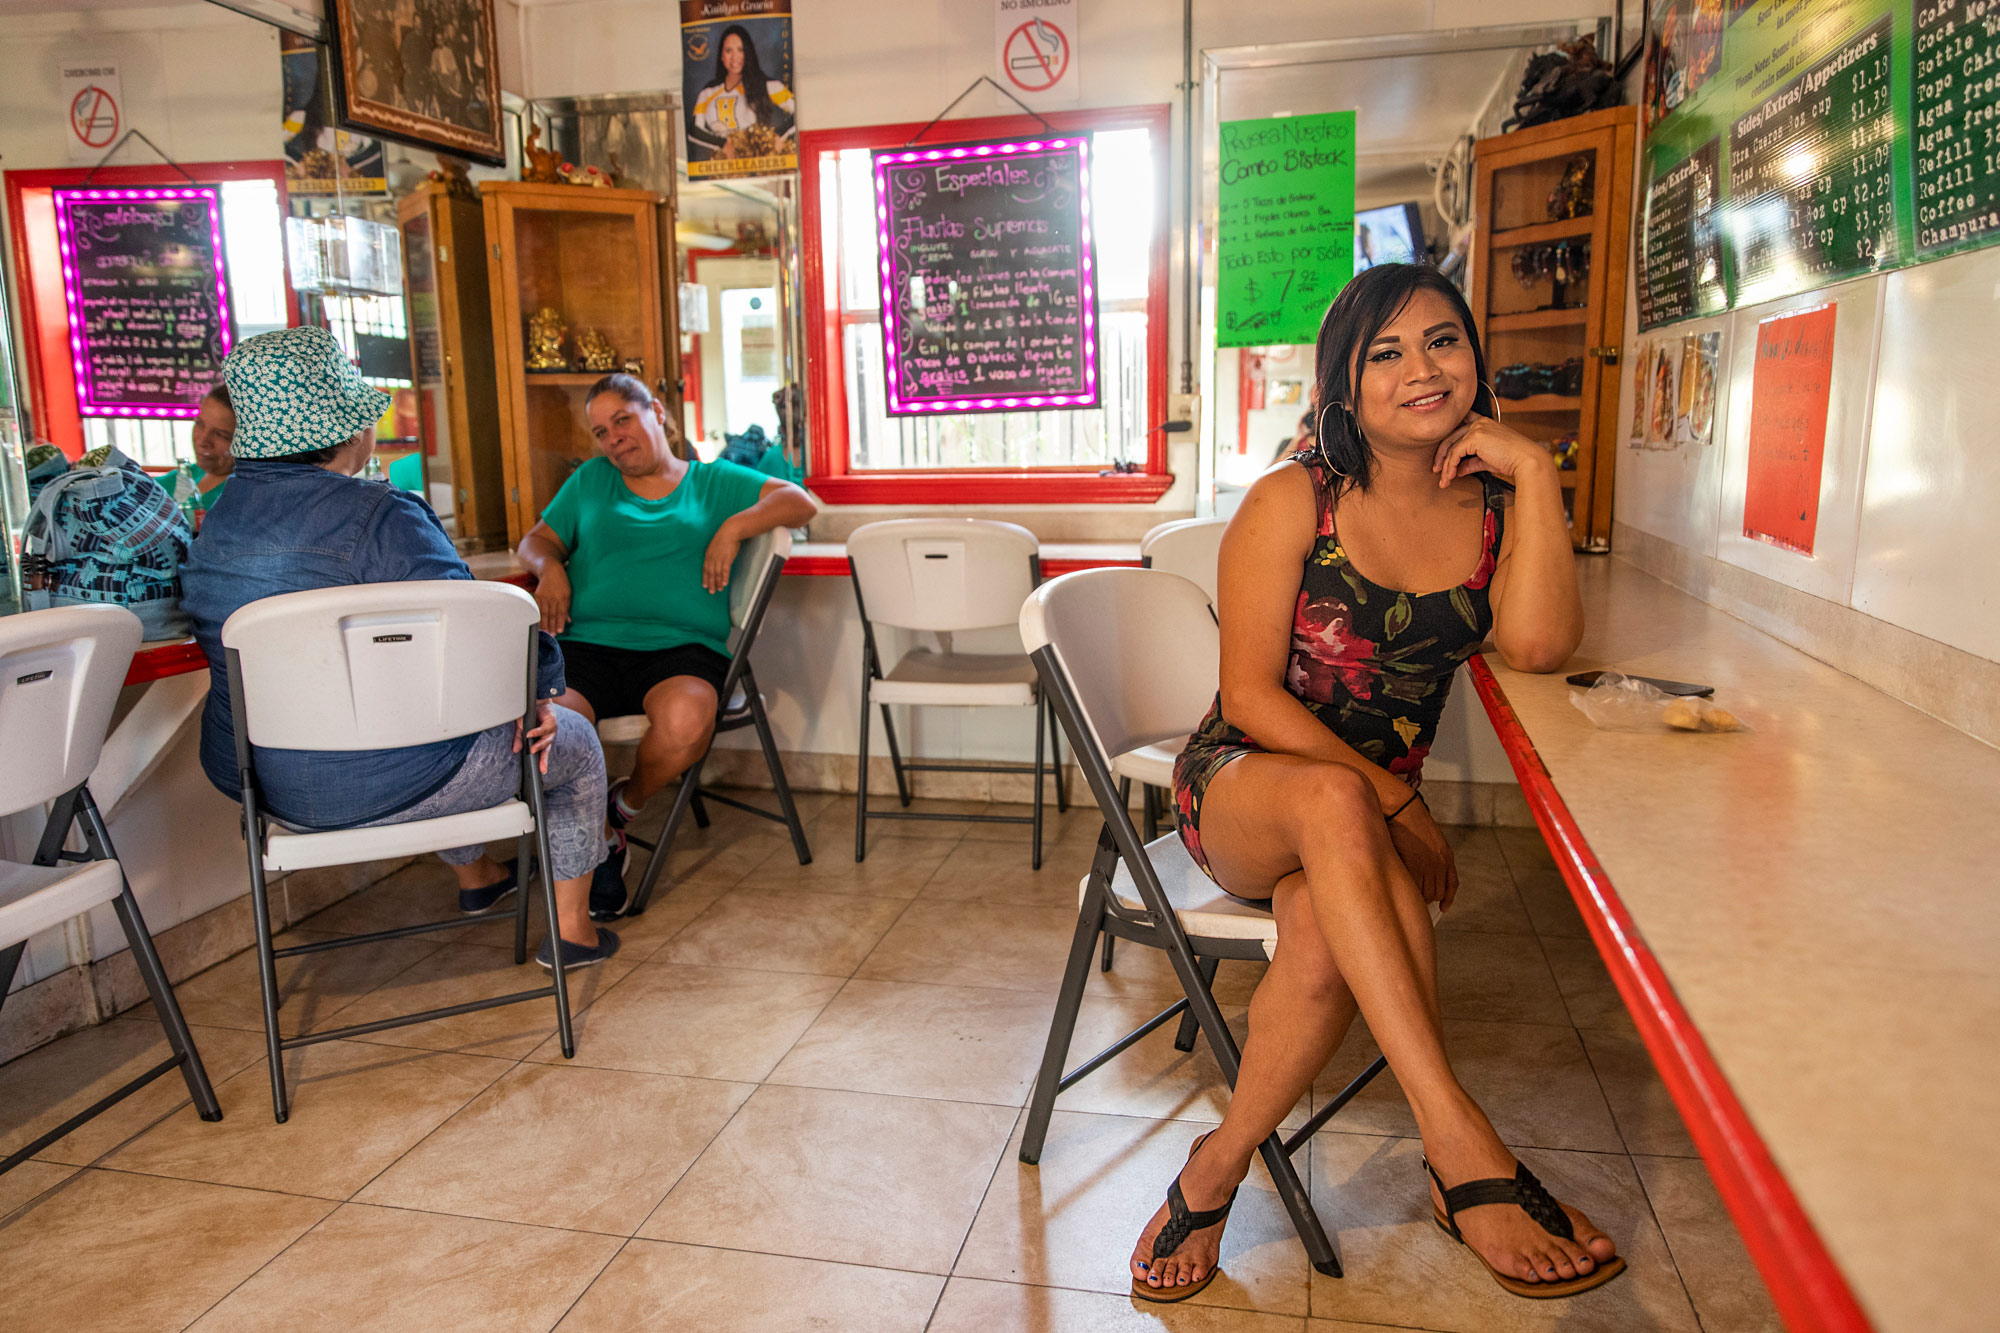 Waiting for her order at Tacos to Go in Brownsville